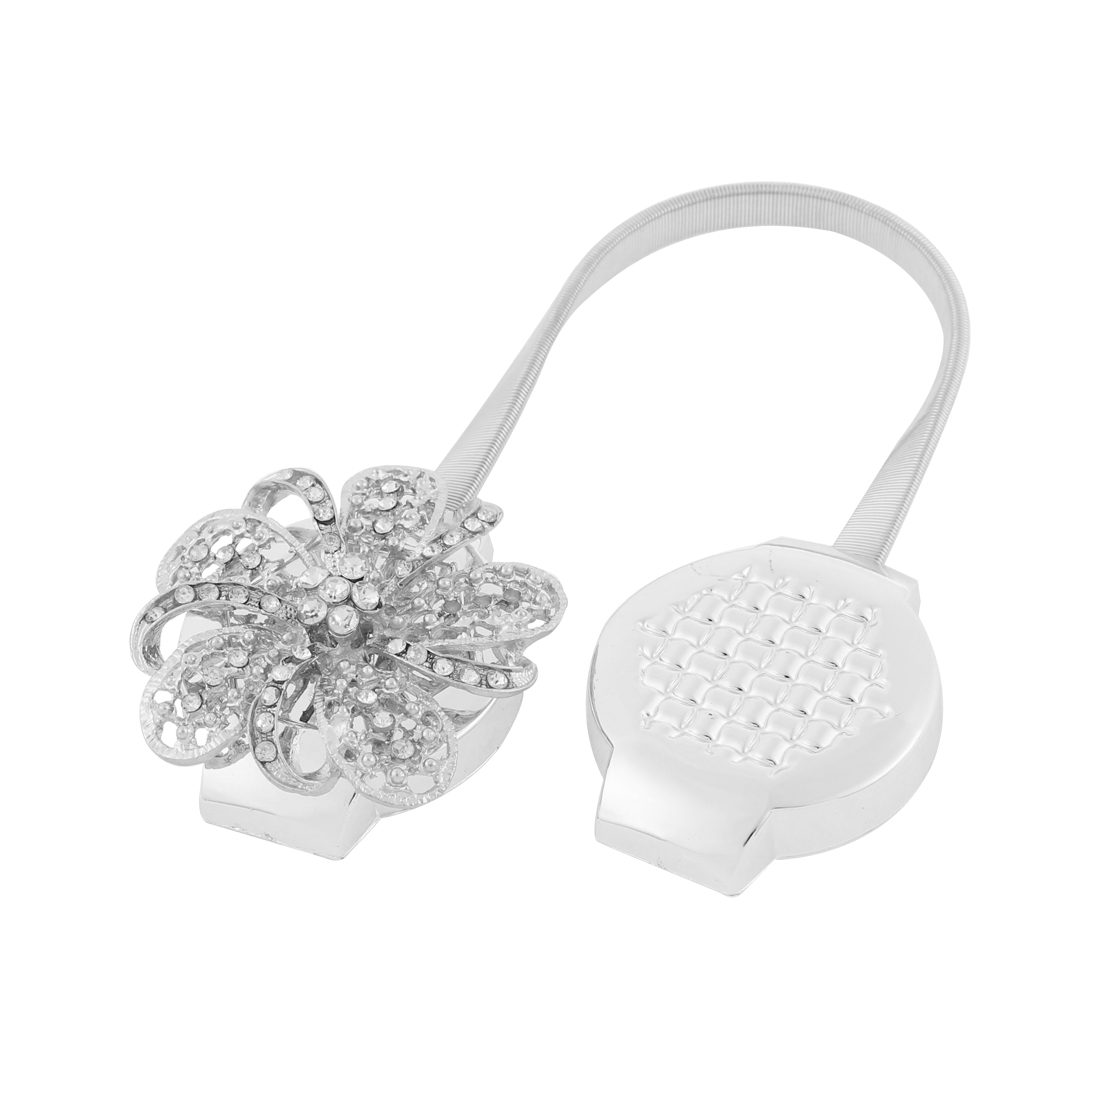 Flower Shaped Crystal Decor Magnetic Curtain Clip Tie Back Holdback Silver Tone